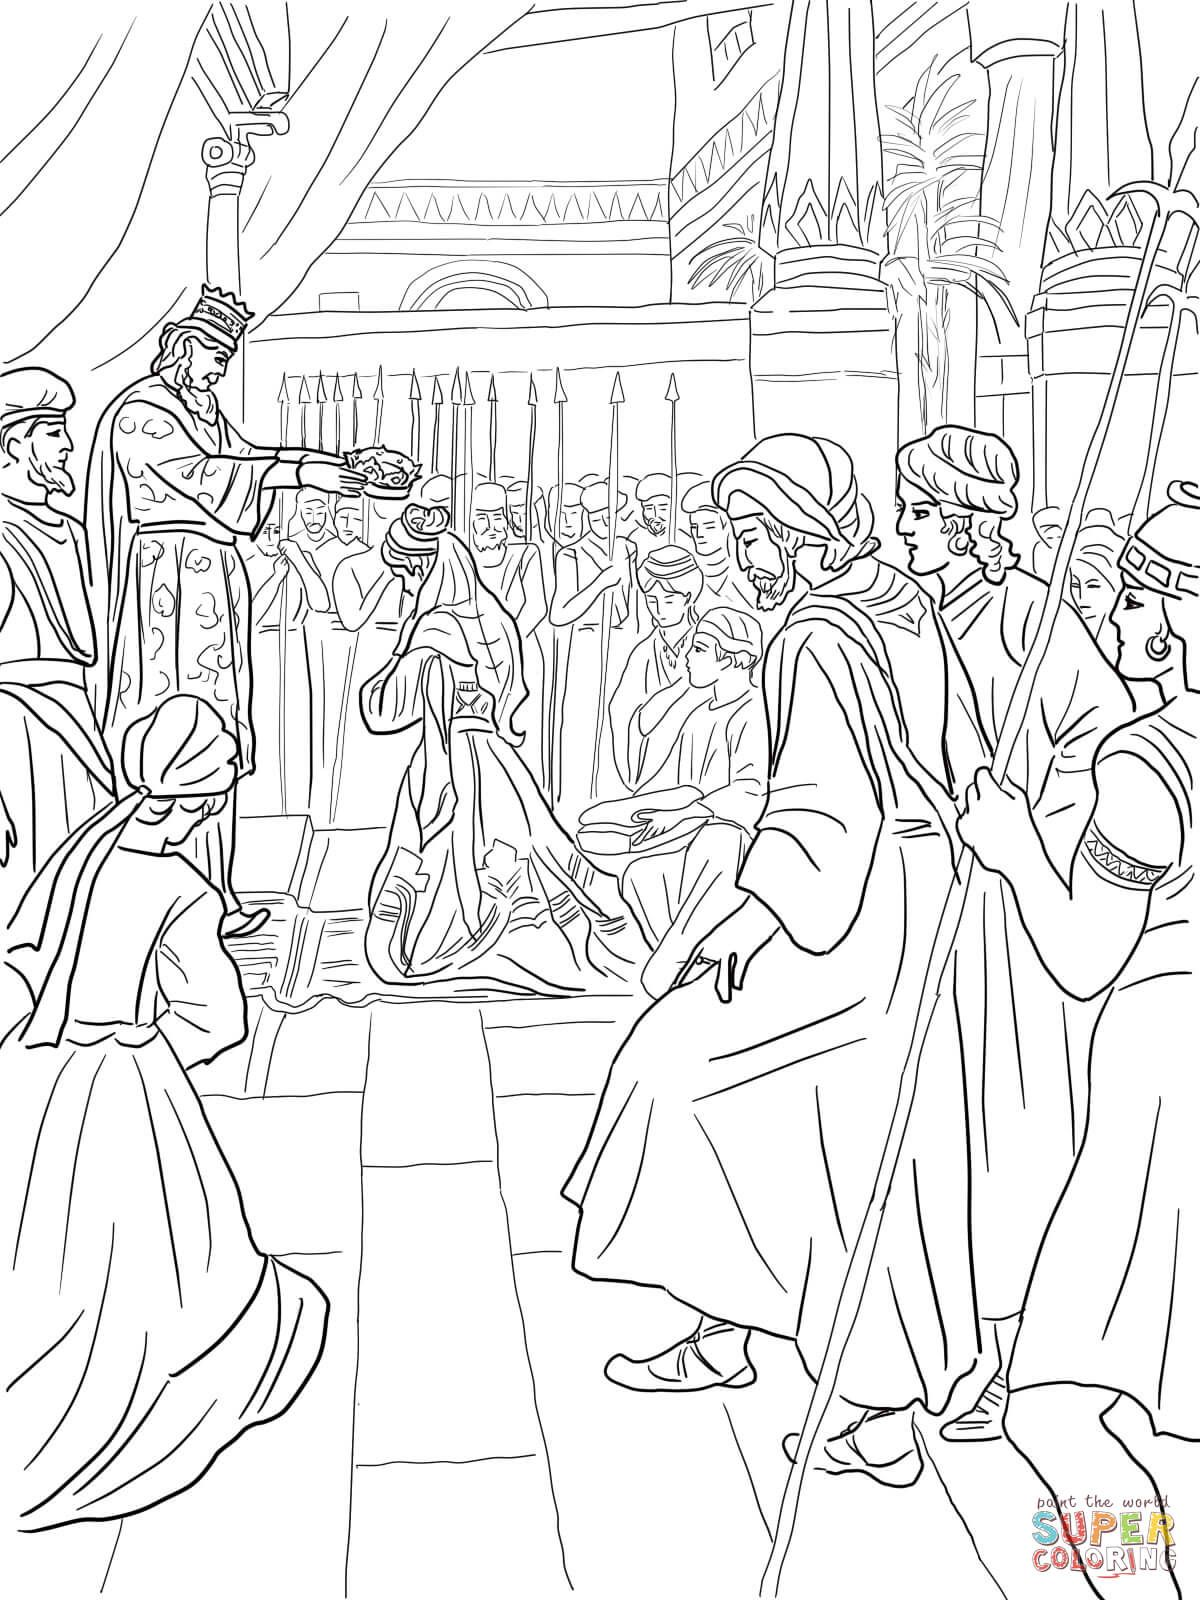 queen esther coloring page free coloring pages kings and queens coloring home esther page coloring queen